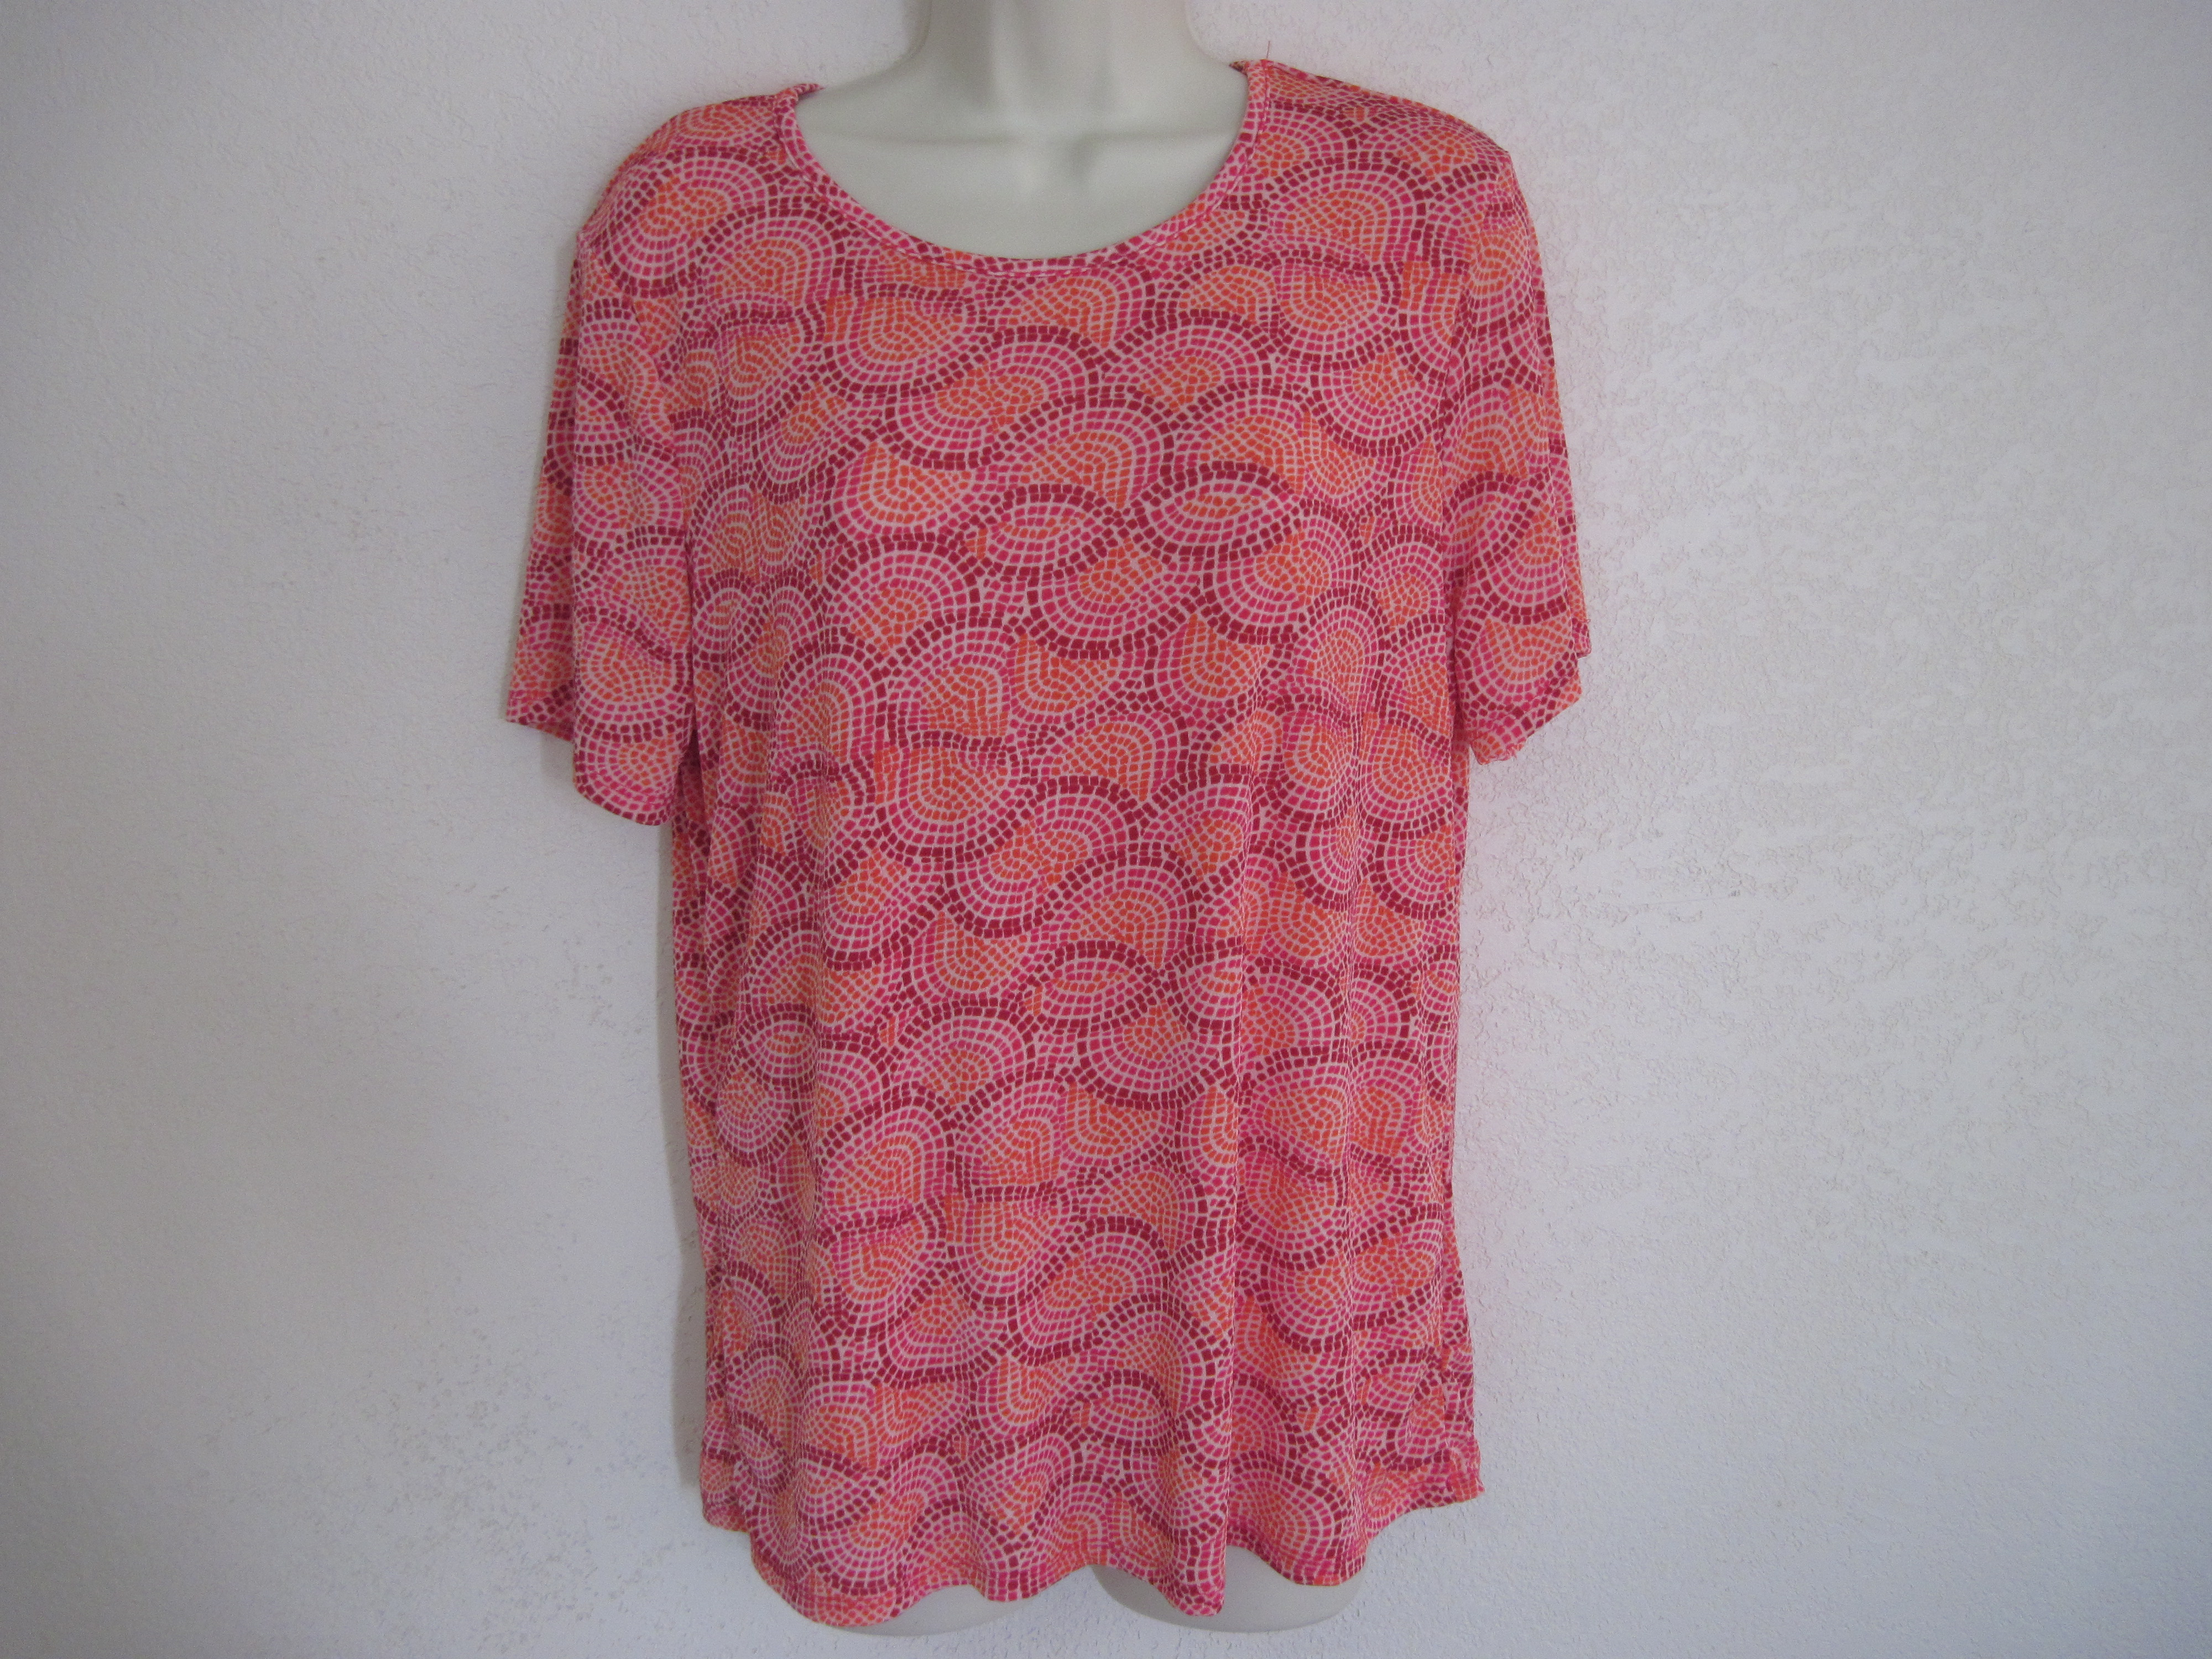 Jaclyn Smith Sz L Womens Shirt (Slinky Shells Orange,Pink